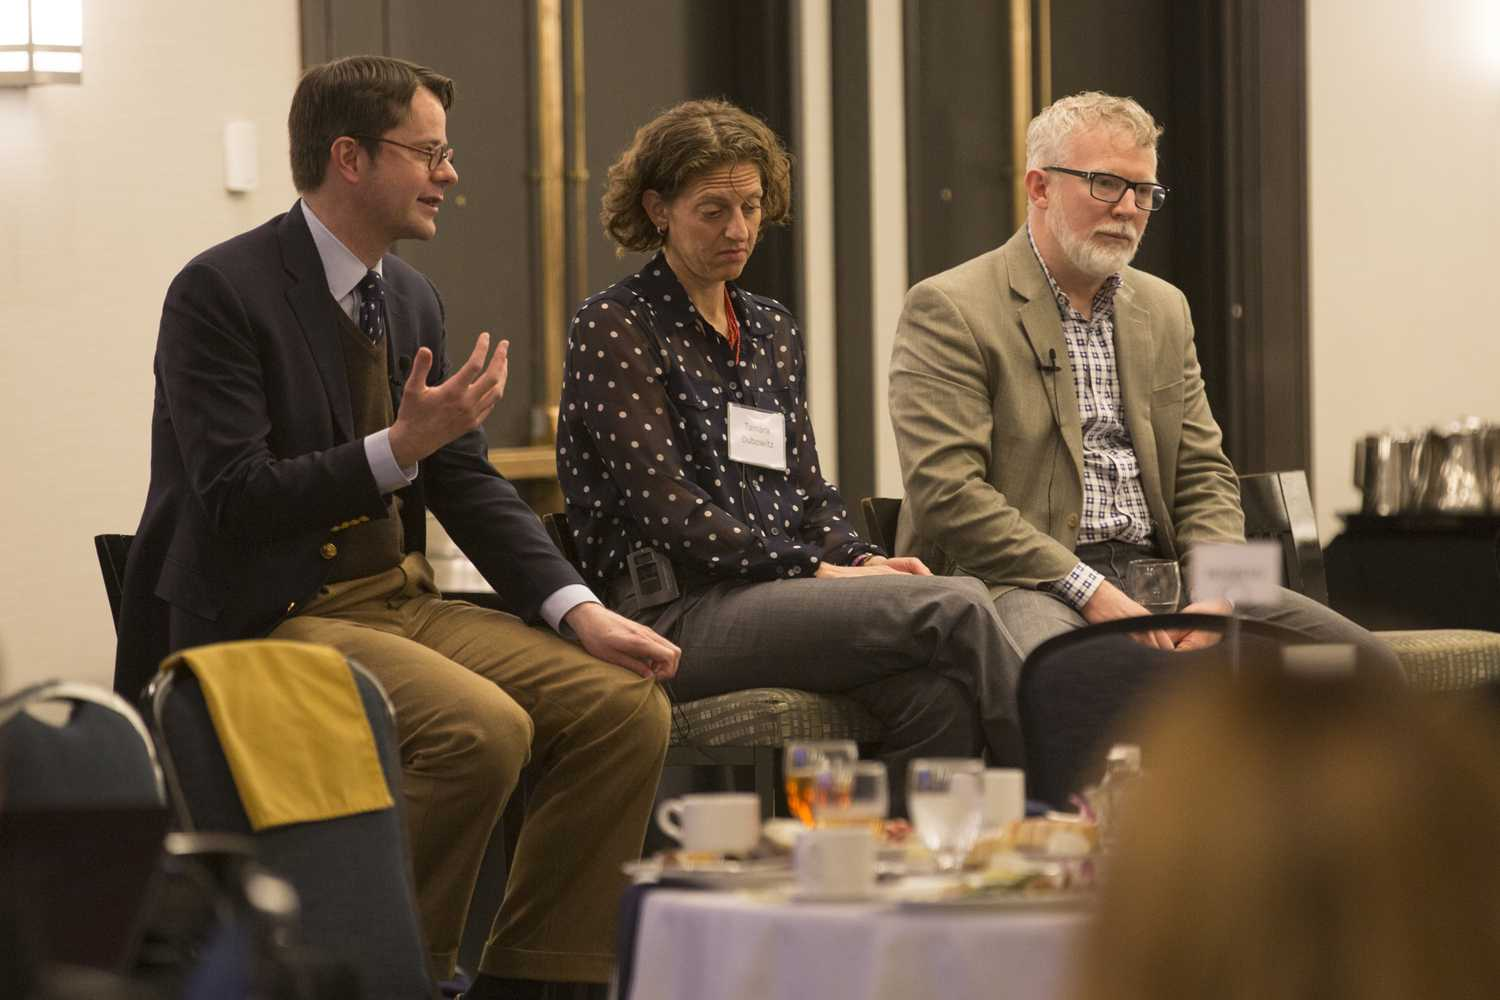 """From left to right, Tyler Vanderweele of Harvard University, Tamara Dubowitz of the RAND Corporation and Jeffrey Bishop of Saint Louis University discuss the health policy community and its ability to evaluate factors such as spirituality, friendship and happiness at the Can Science Measure the """"Culture of Health""""? event in the William Pitt Union Monday night. (Photo by Anas Dighriri 